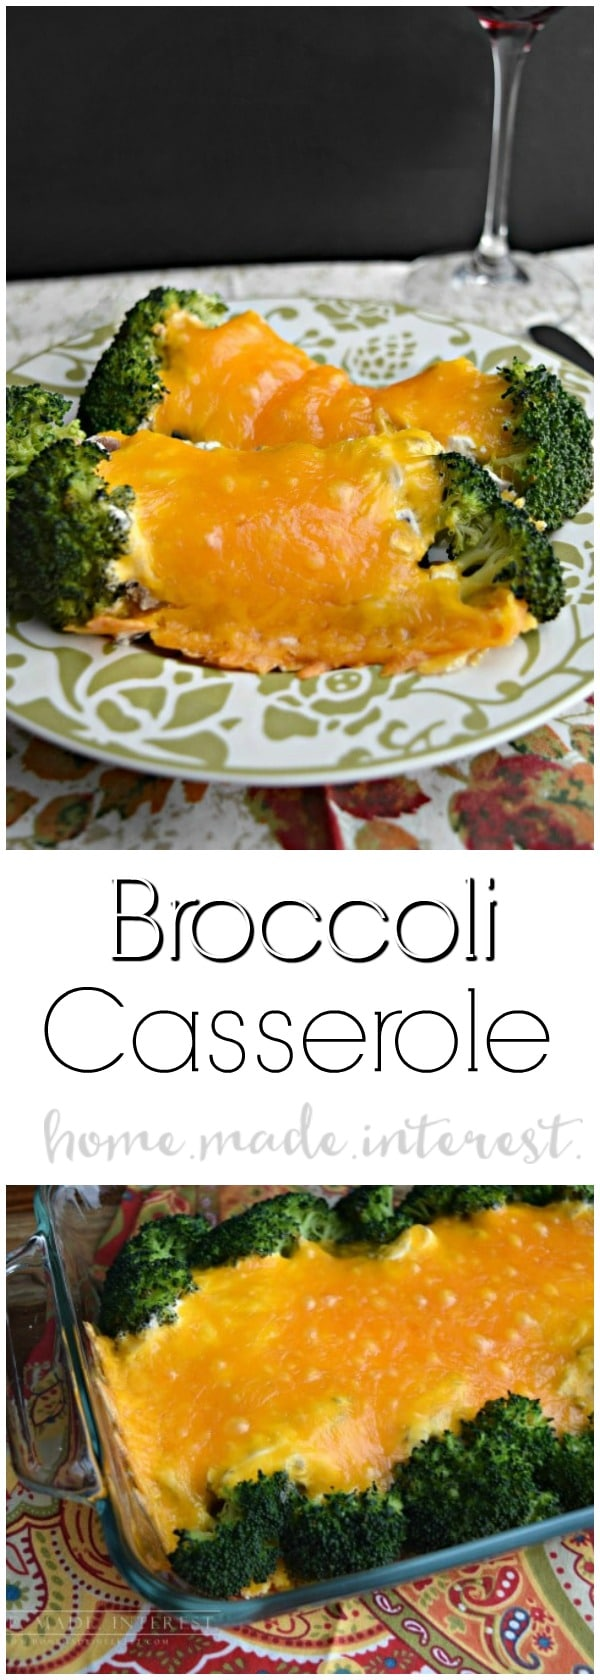 Broccoli casserole is an easy casserole recipe that is the perfect side dish for a weeknight dinner or a holiday meal. I love to have it on Easter, Thanksgiving or Christmas (sometimes both!). With broccoli, mushrooms, sour cream, and cheddar cheese, it is creamy and delicious side dish recipe that even the kids will love.